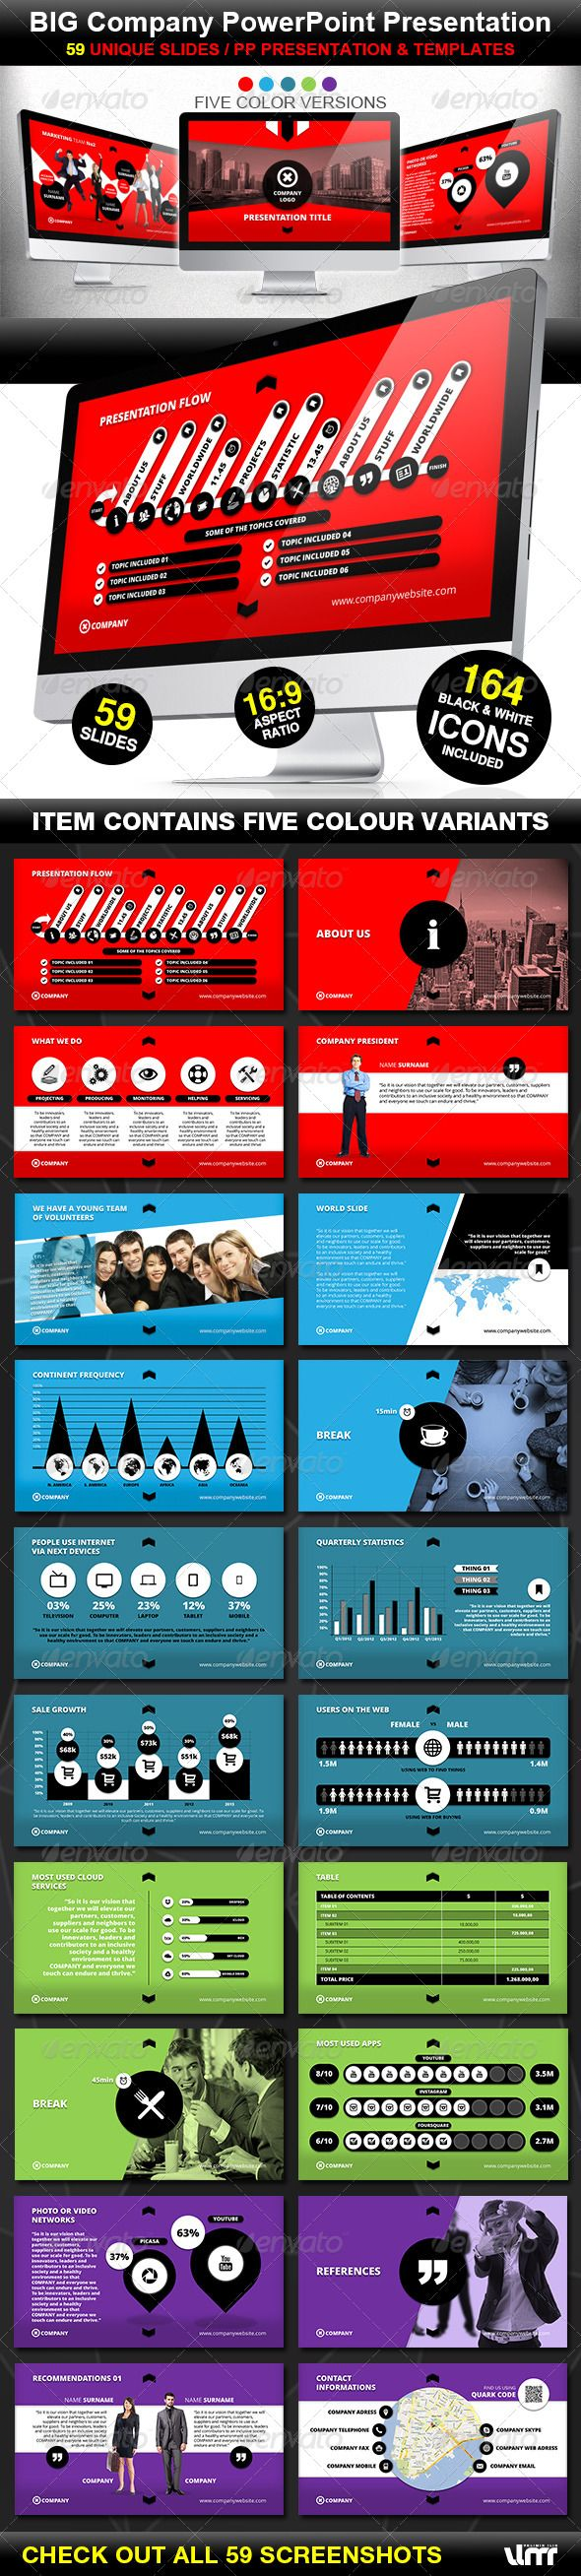 Presentation Templates - Big Company PowerPoint Prezentation Template | GraphicRiver, presentation, color pattern, design,